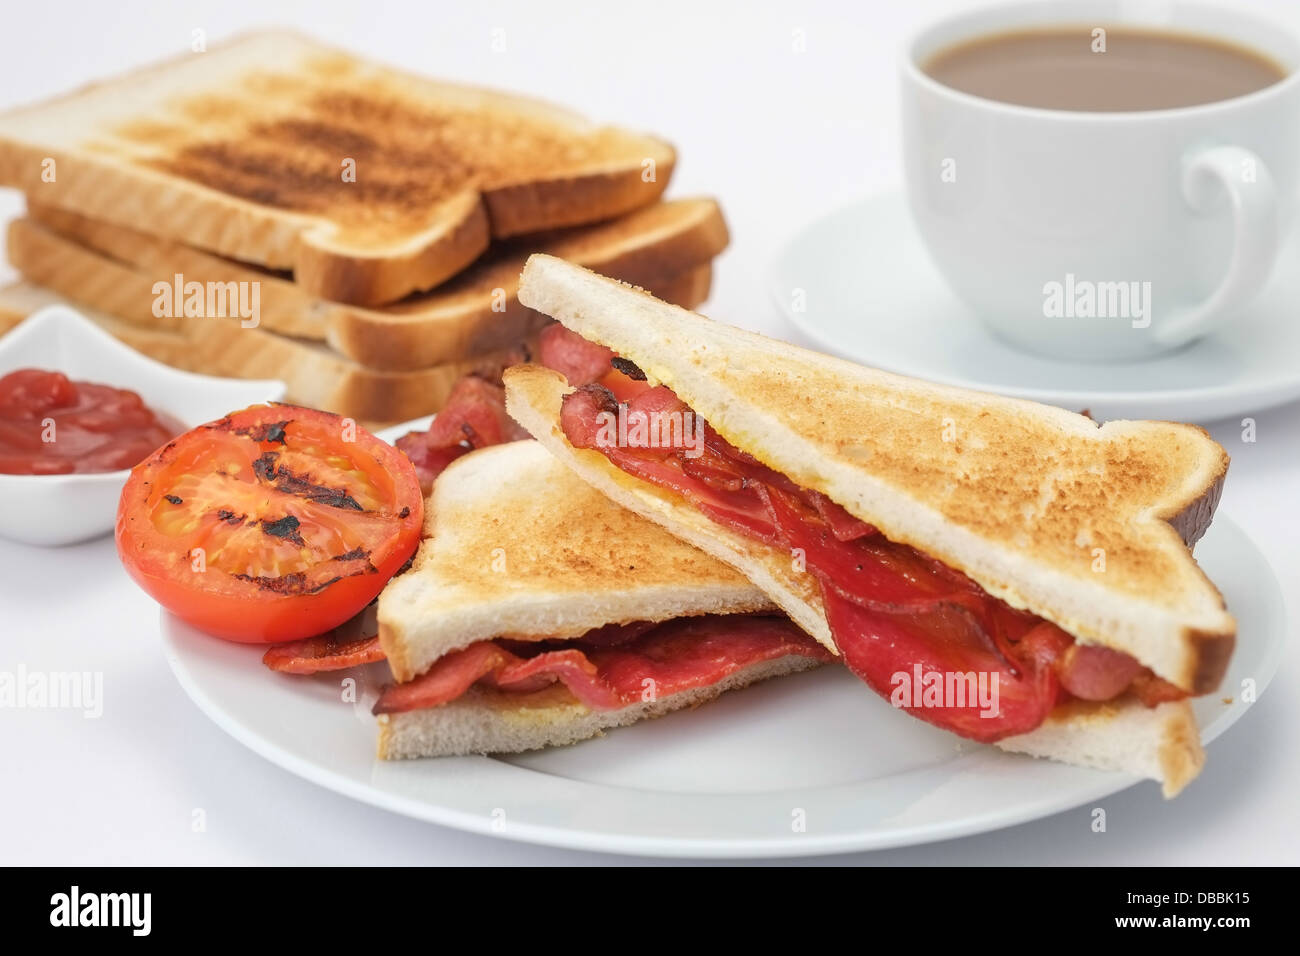 Breakfast of a bacon sandwich with toast and a cup of coffee - Stock Image